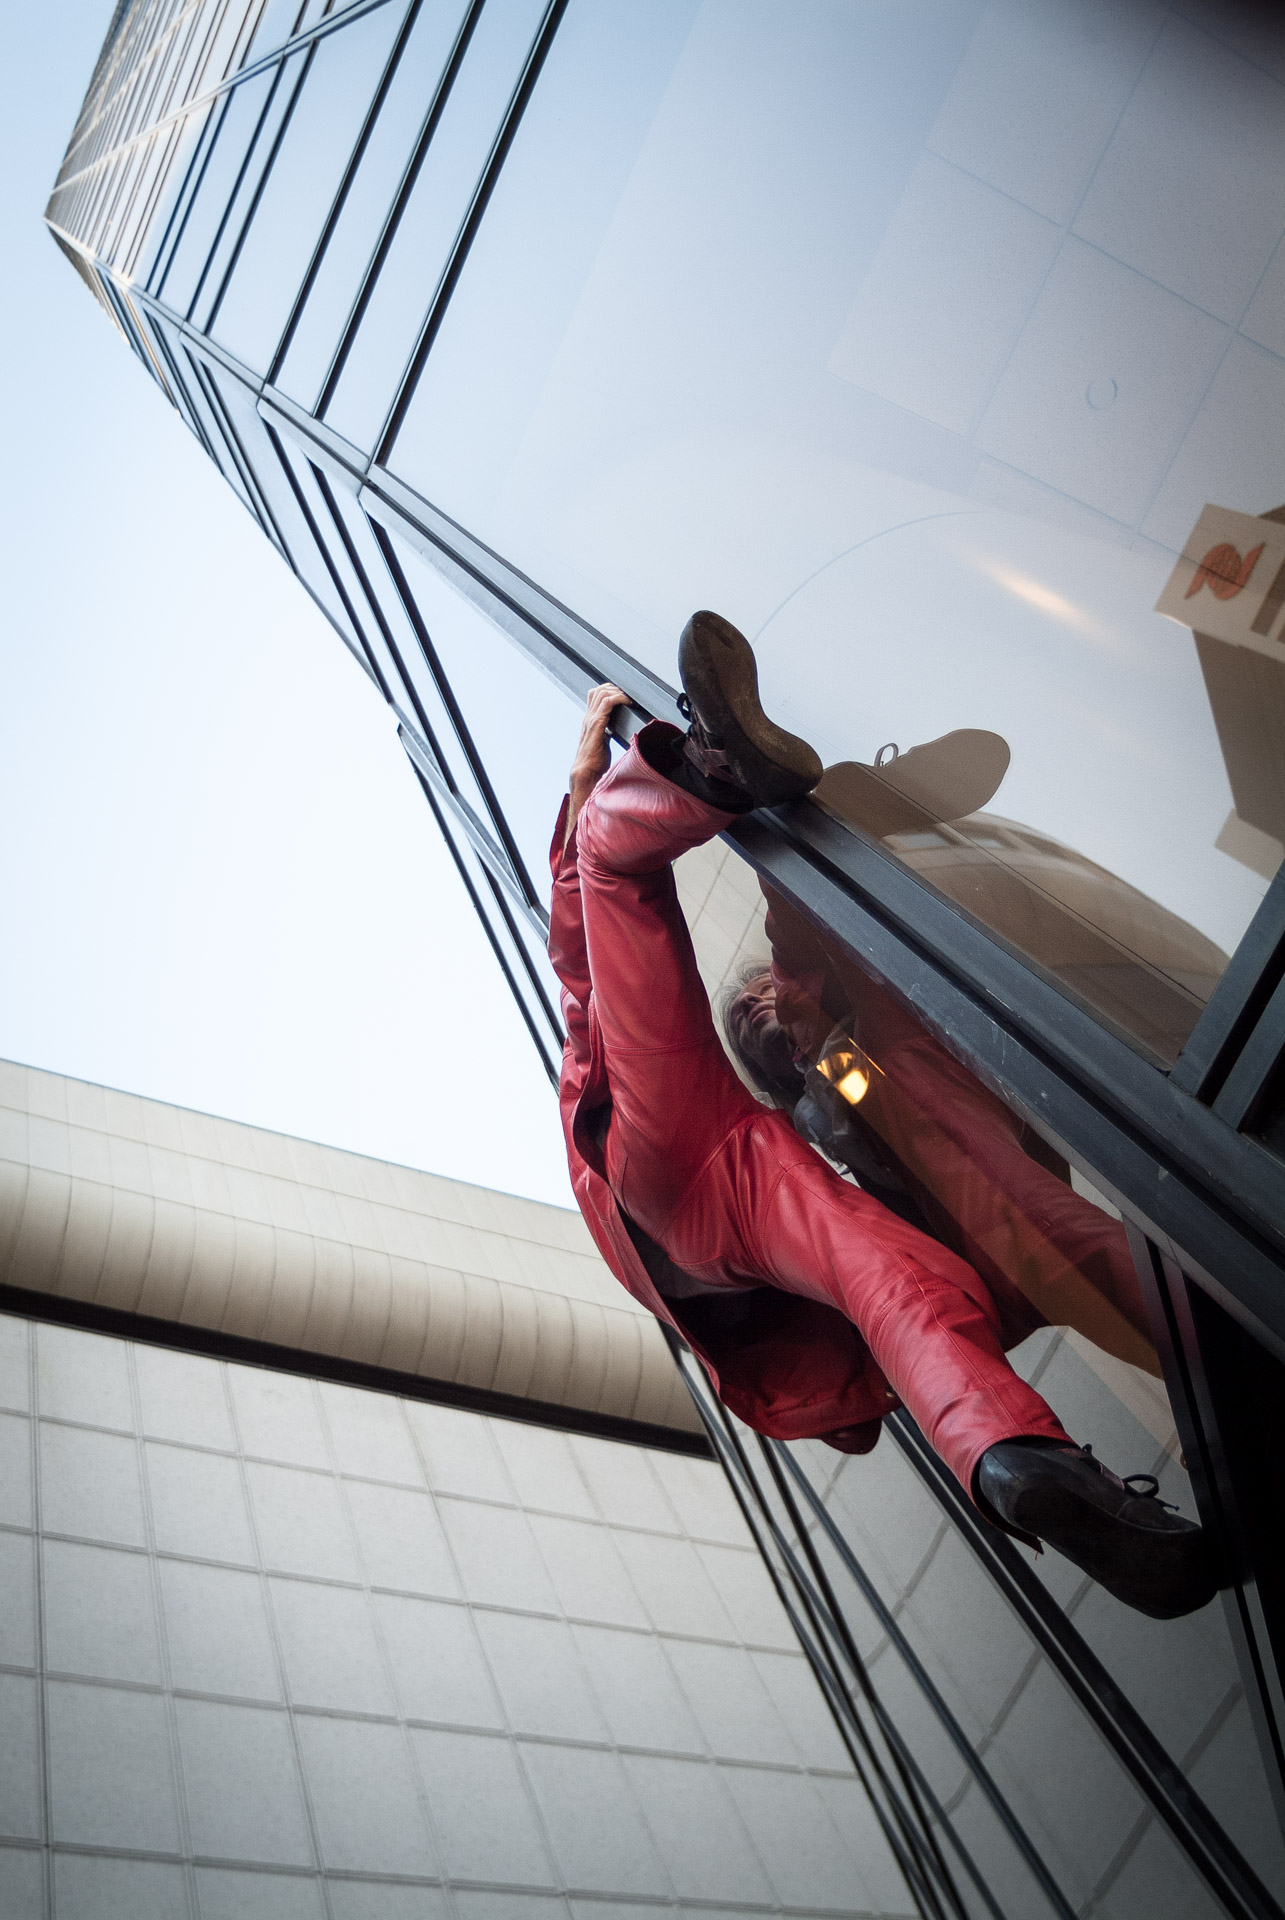 Alain trying out some holds. TD Tower, Vancouver. February 25th 2006